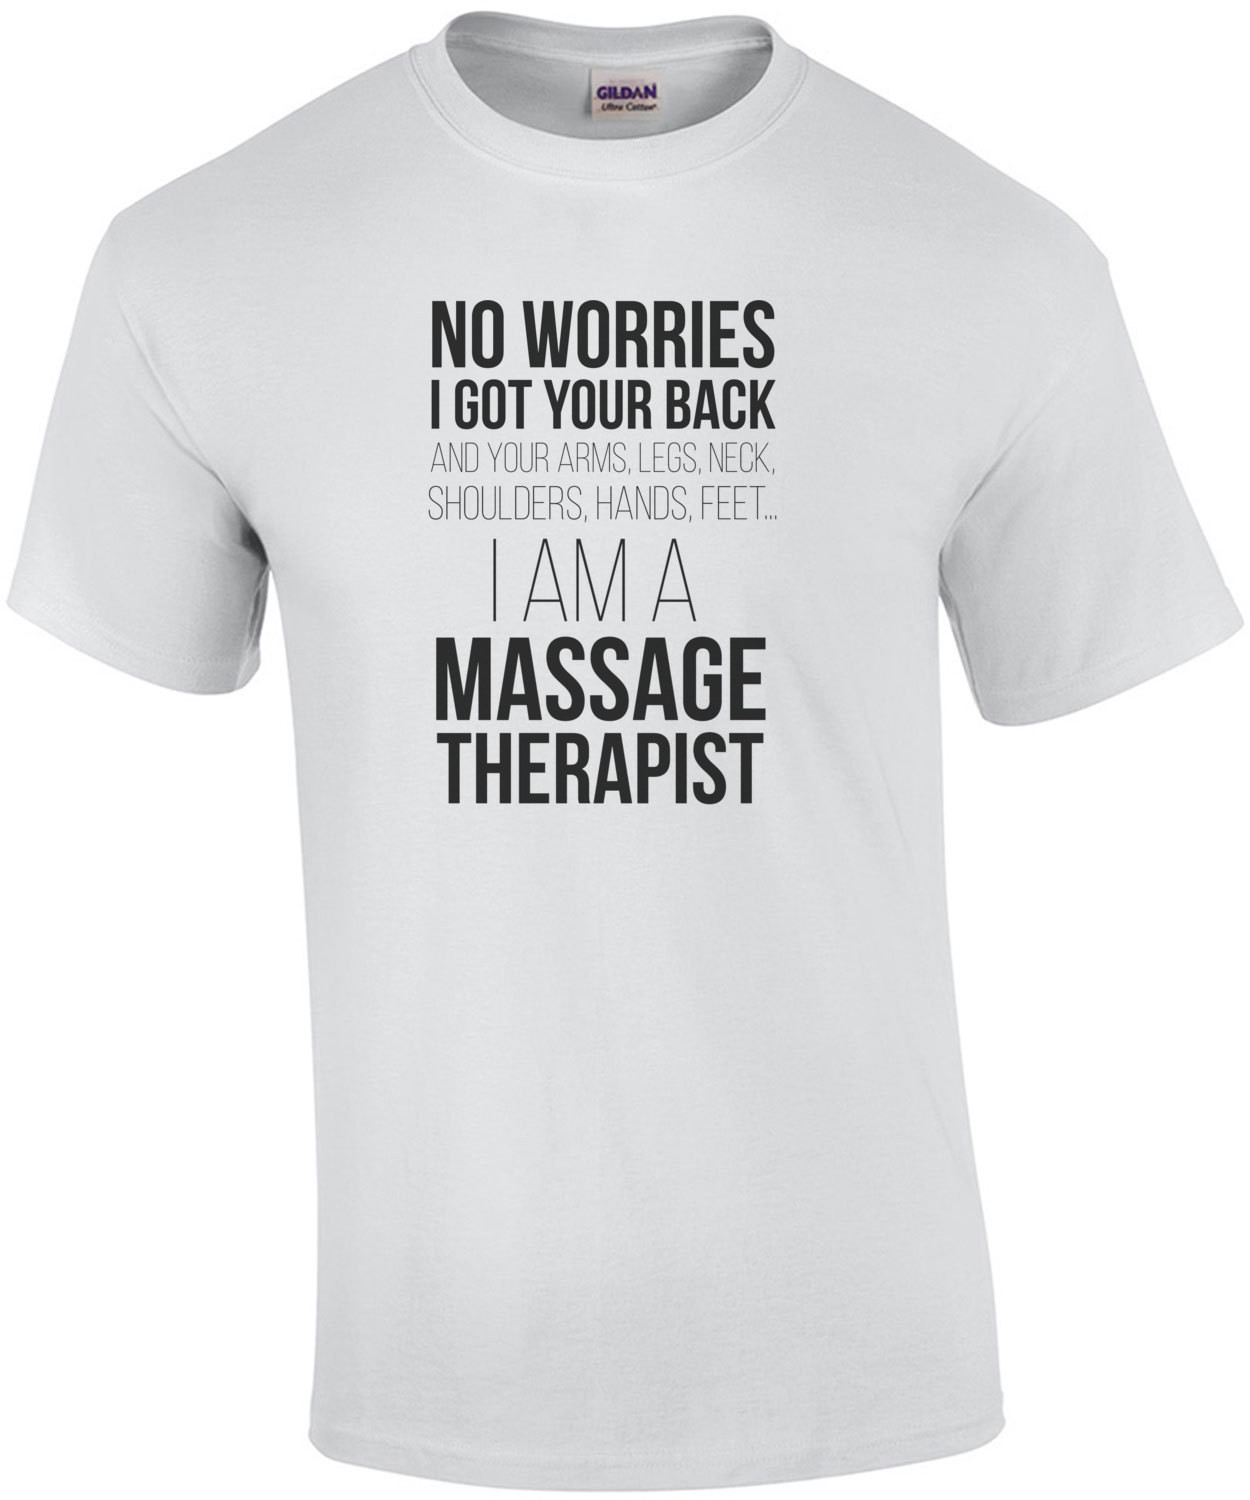 No worries, I got your back... and your arms, legs, neck, shoulders, hands, feet, I am a massage therapist. T-Shirt